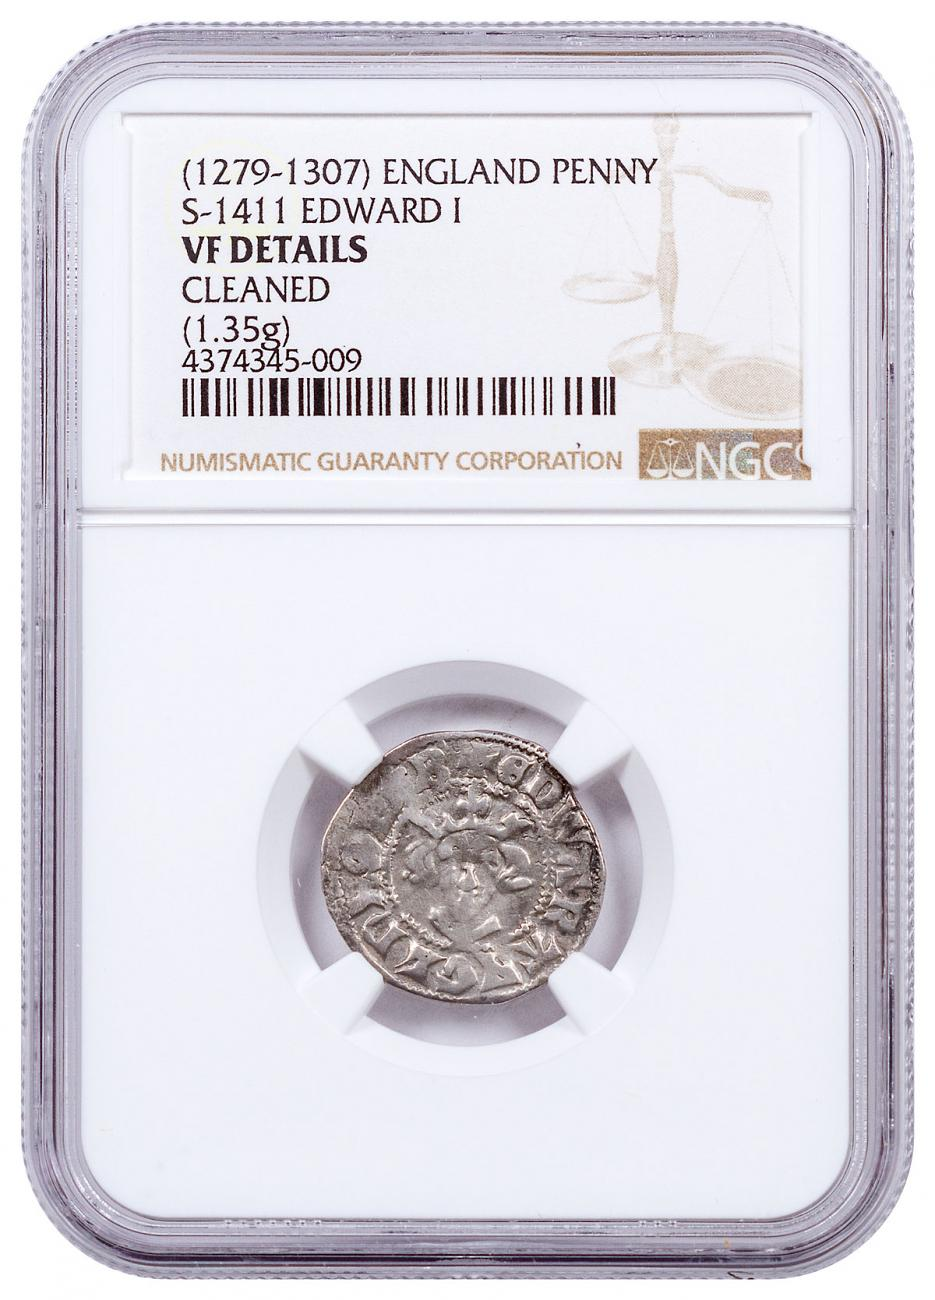 1279-1307 Great Britain England Canterbury Edward I Treasure Silver Penny Cleaned NGC VF Details